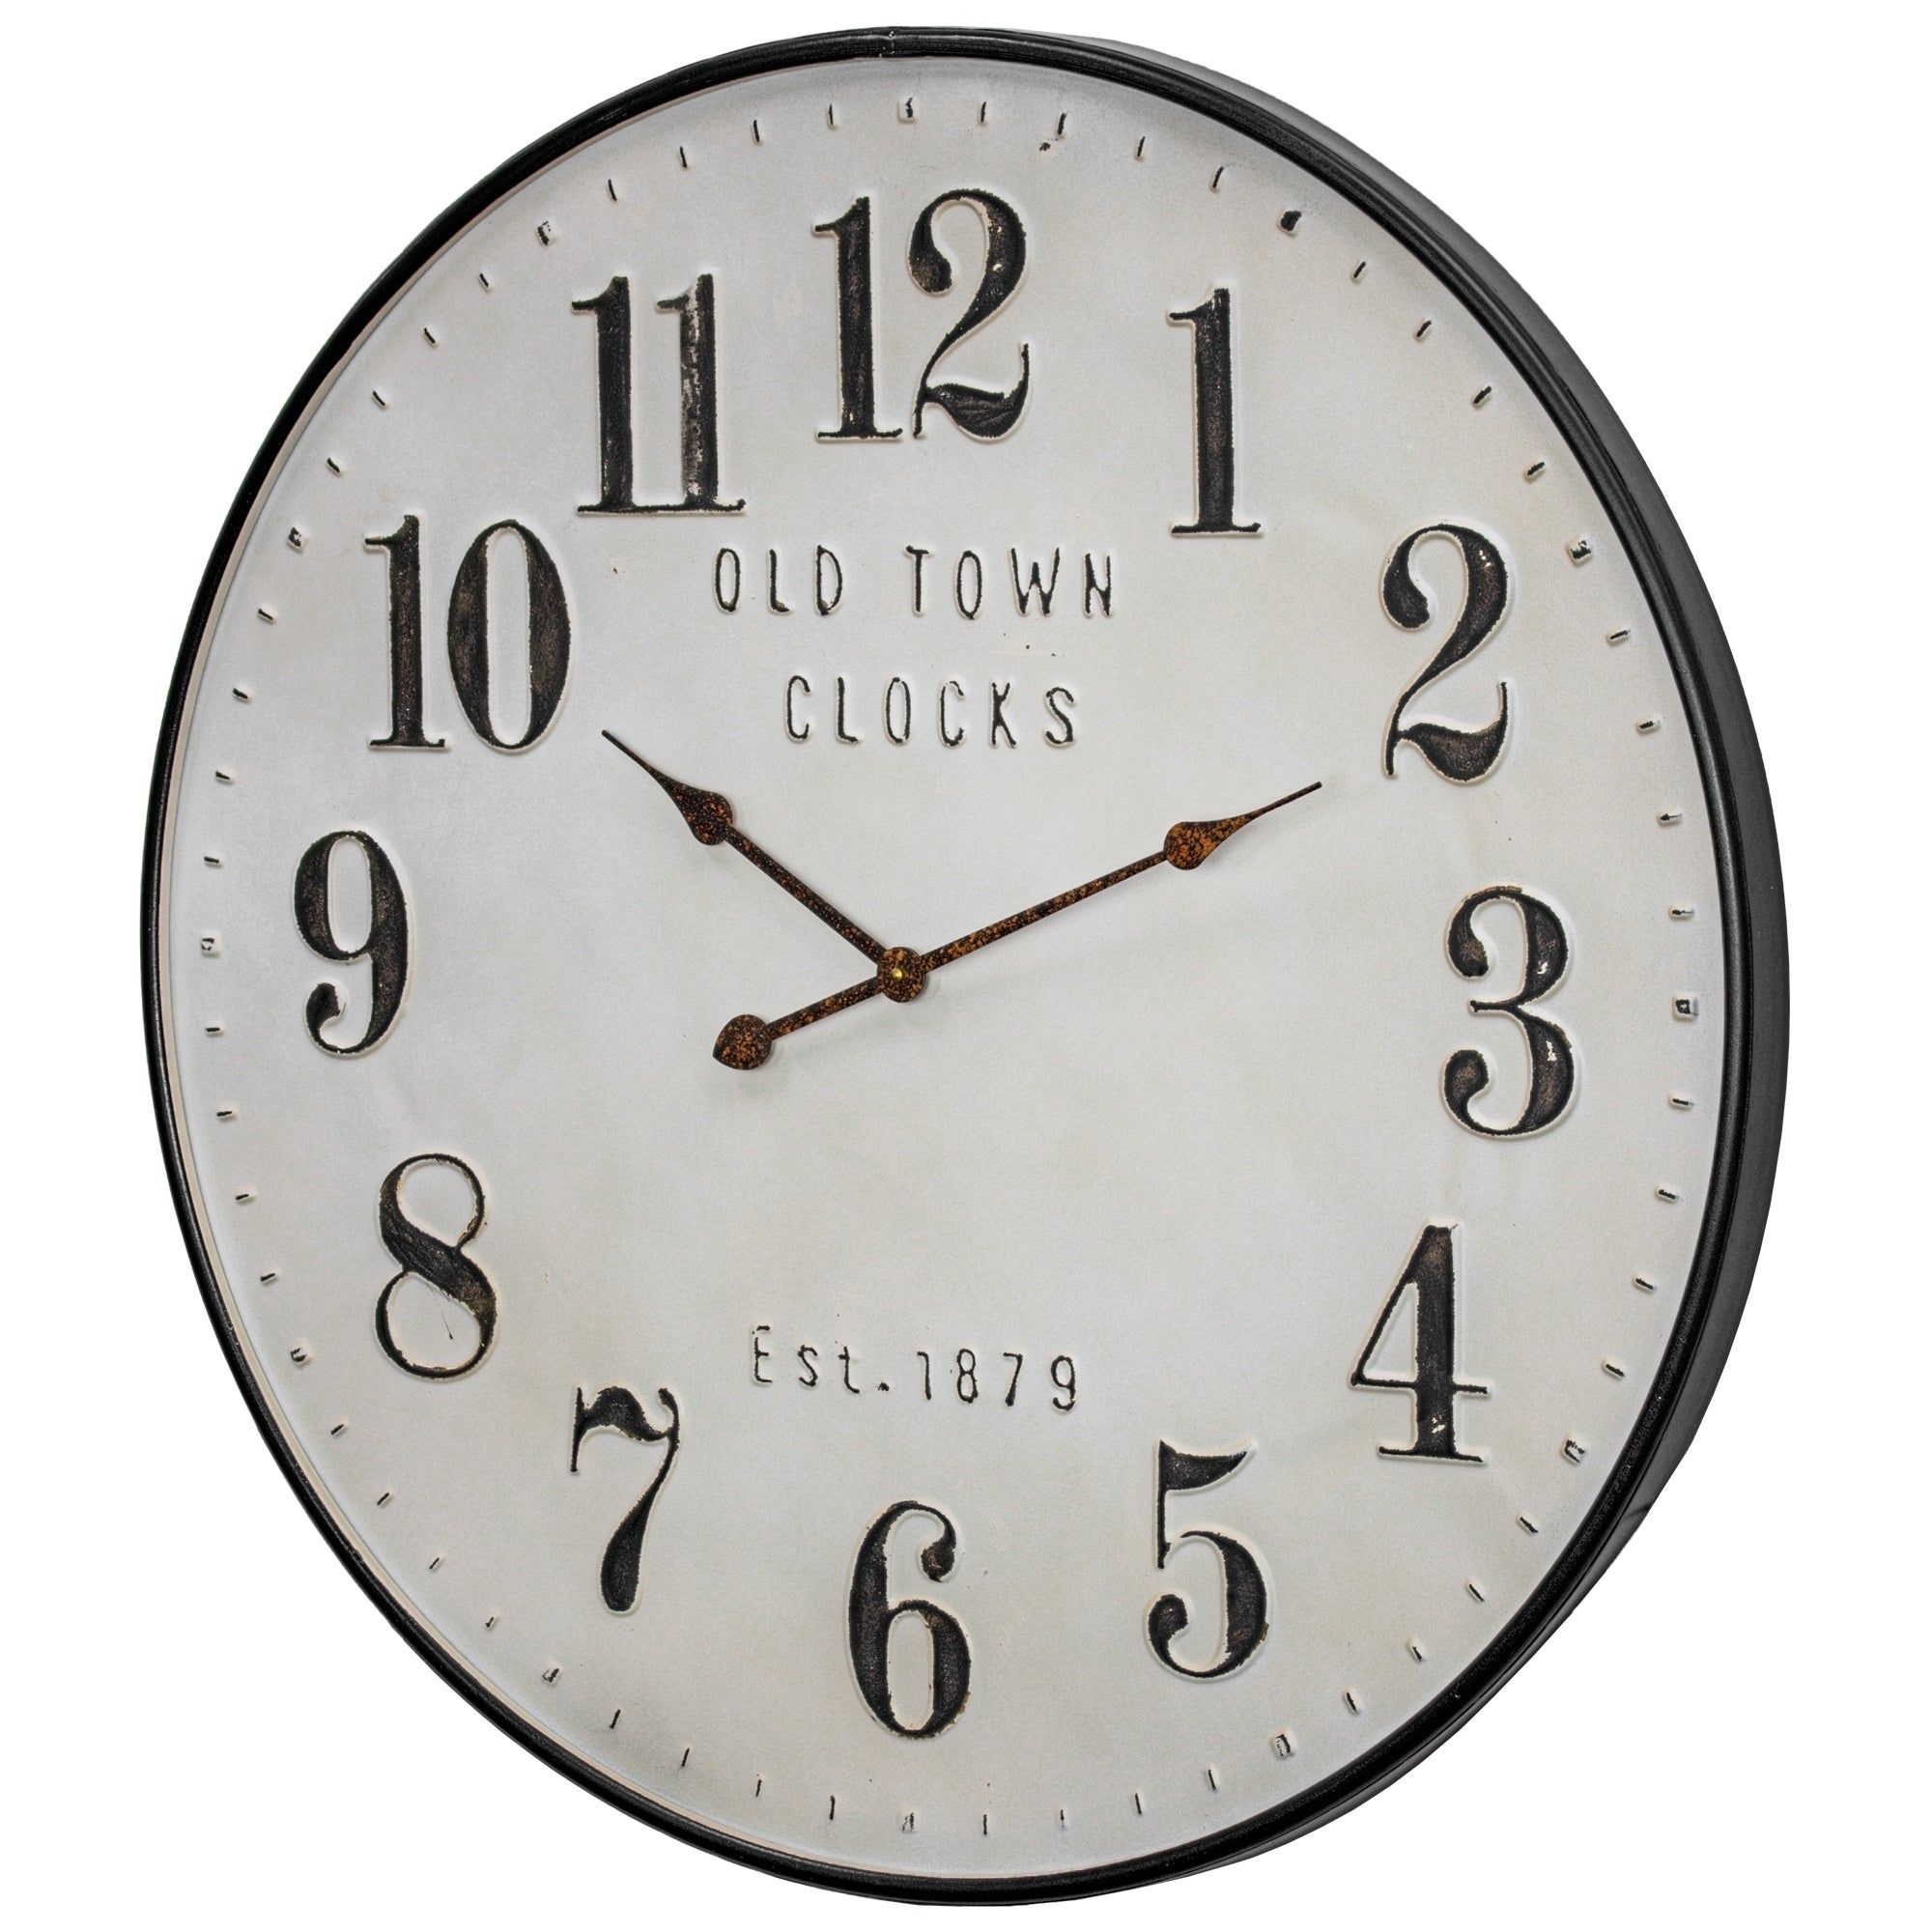 Online Shopping Bedding Furniture Electronics Jewelry Clothing More In 2020 Wall Clock Old Town Clock Metal Wall Clock